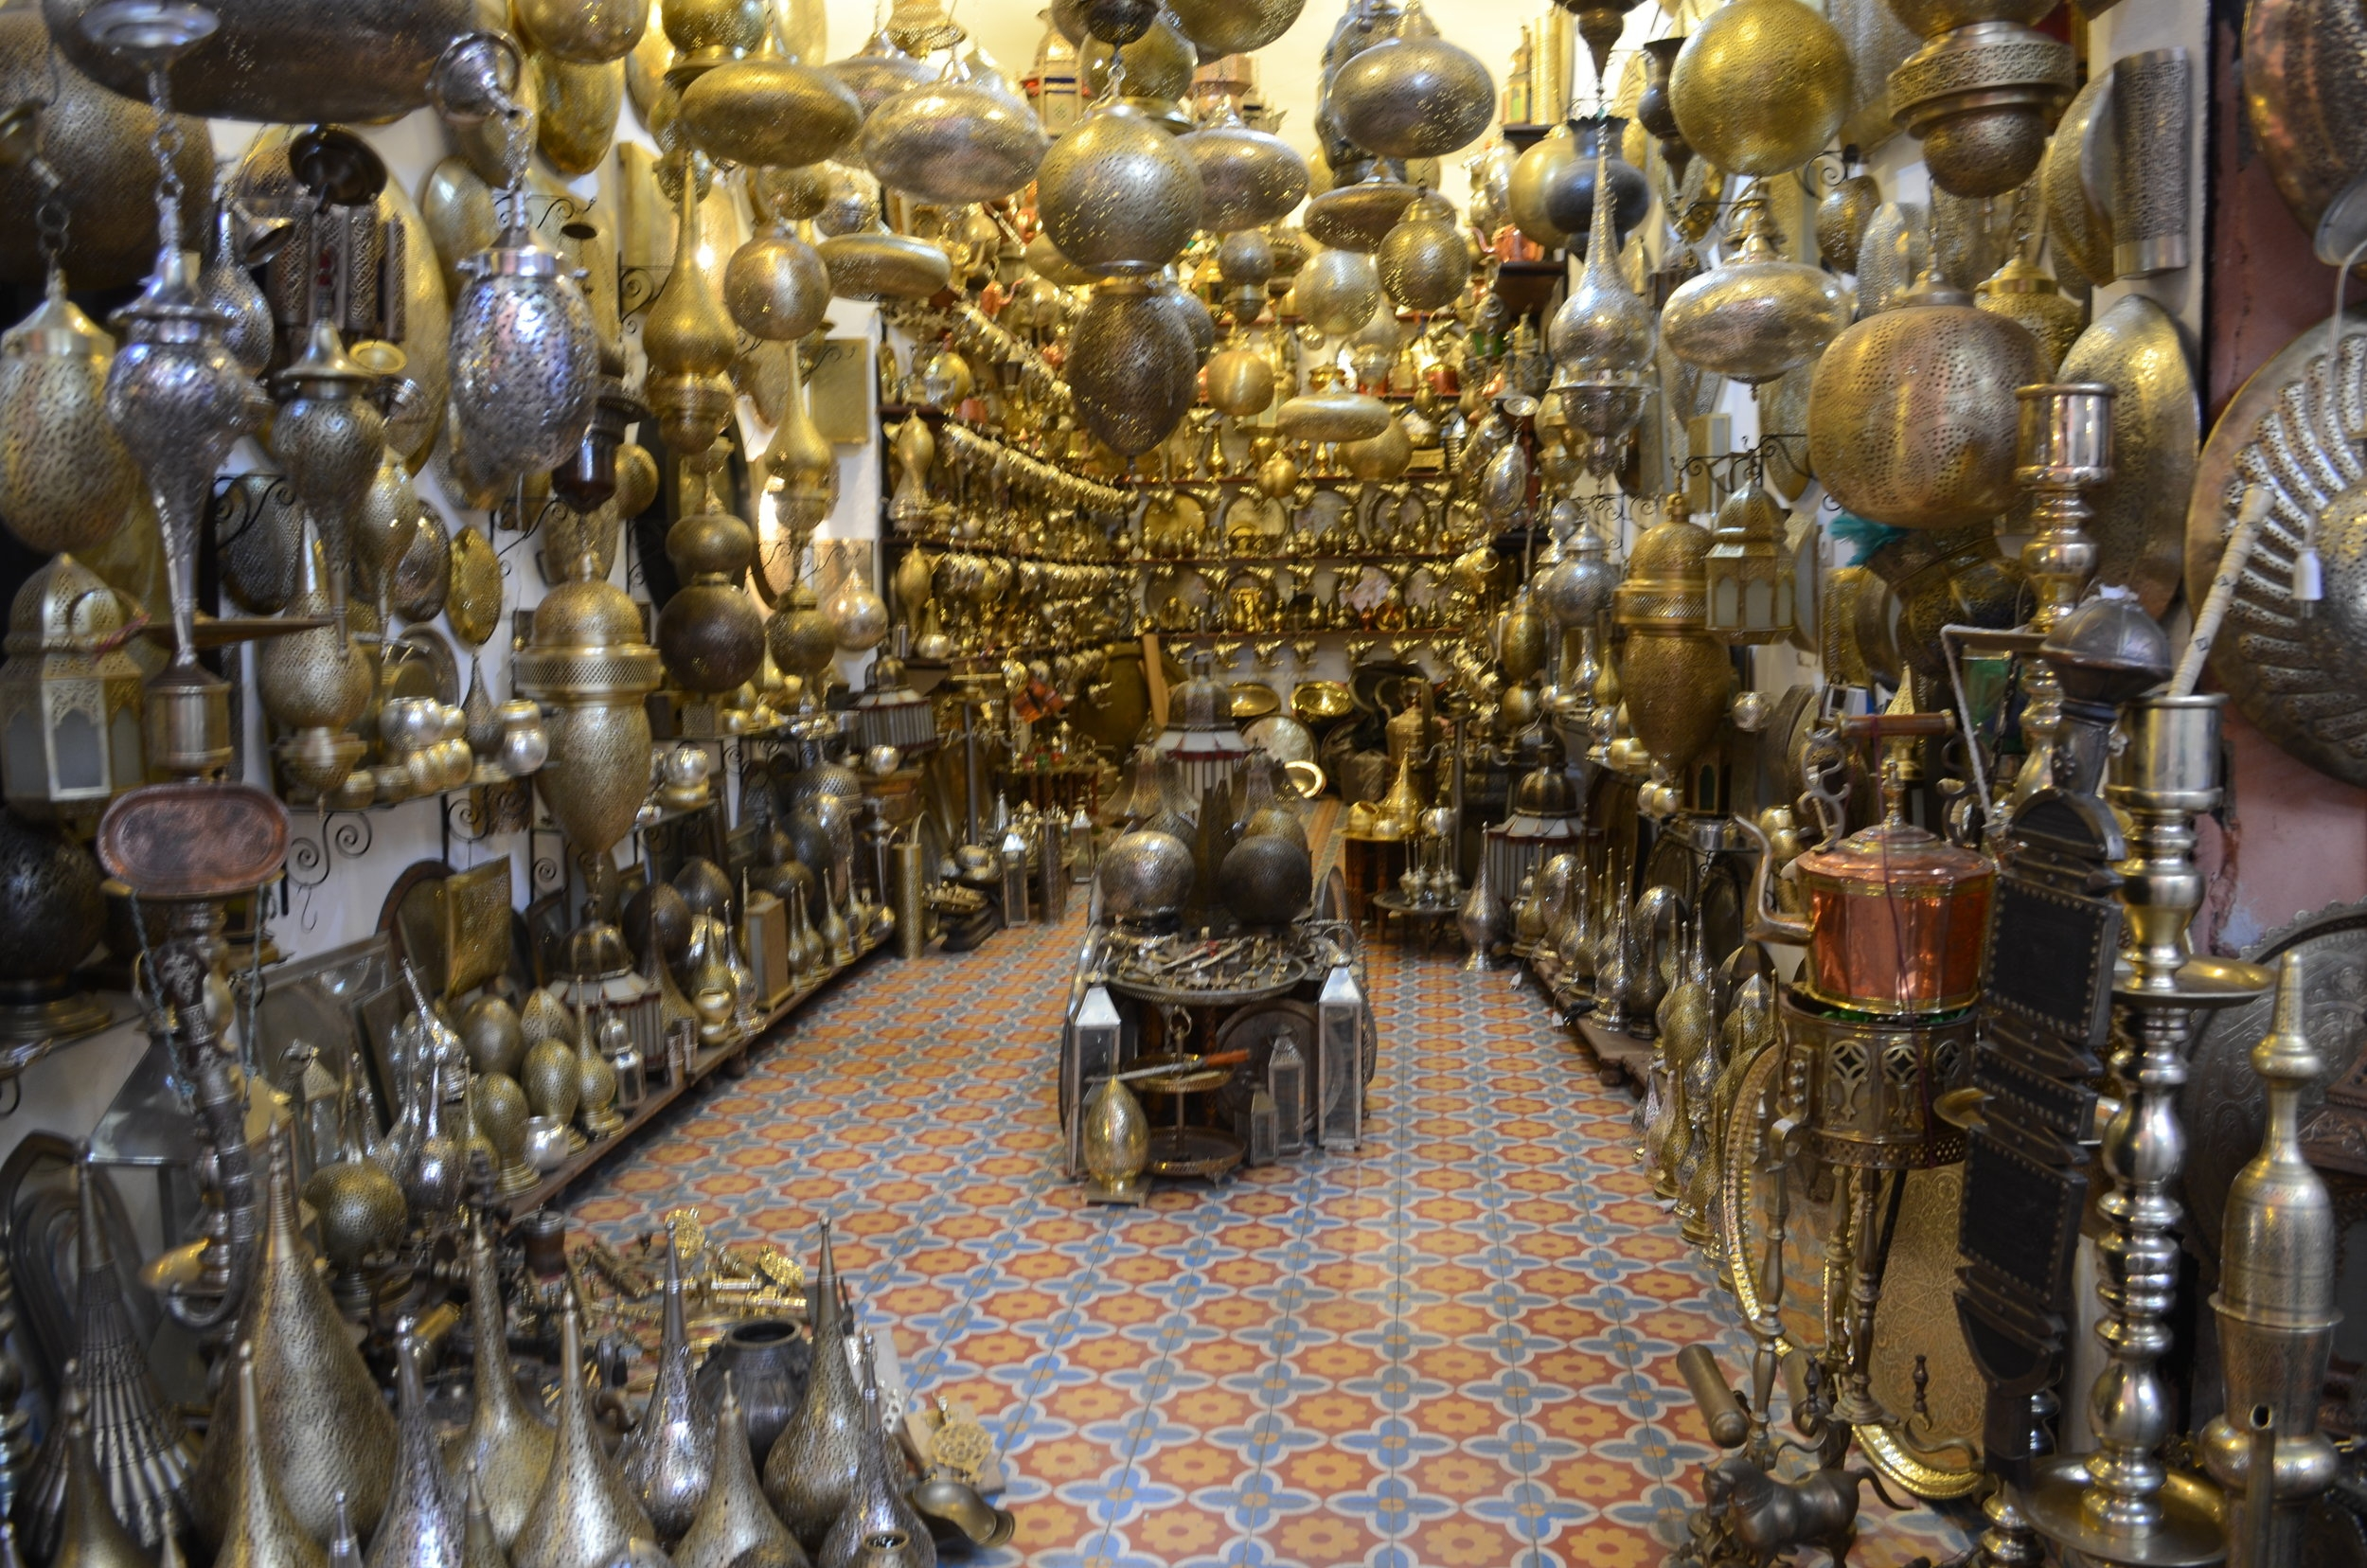 Day 1 - Shop the souks of Marrakesh